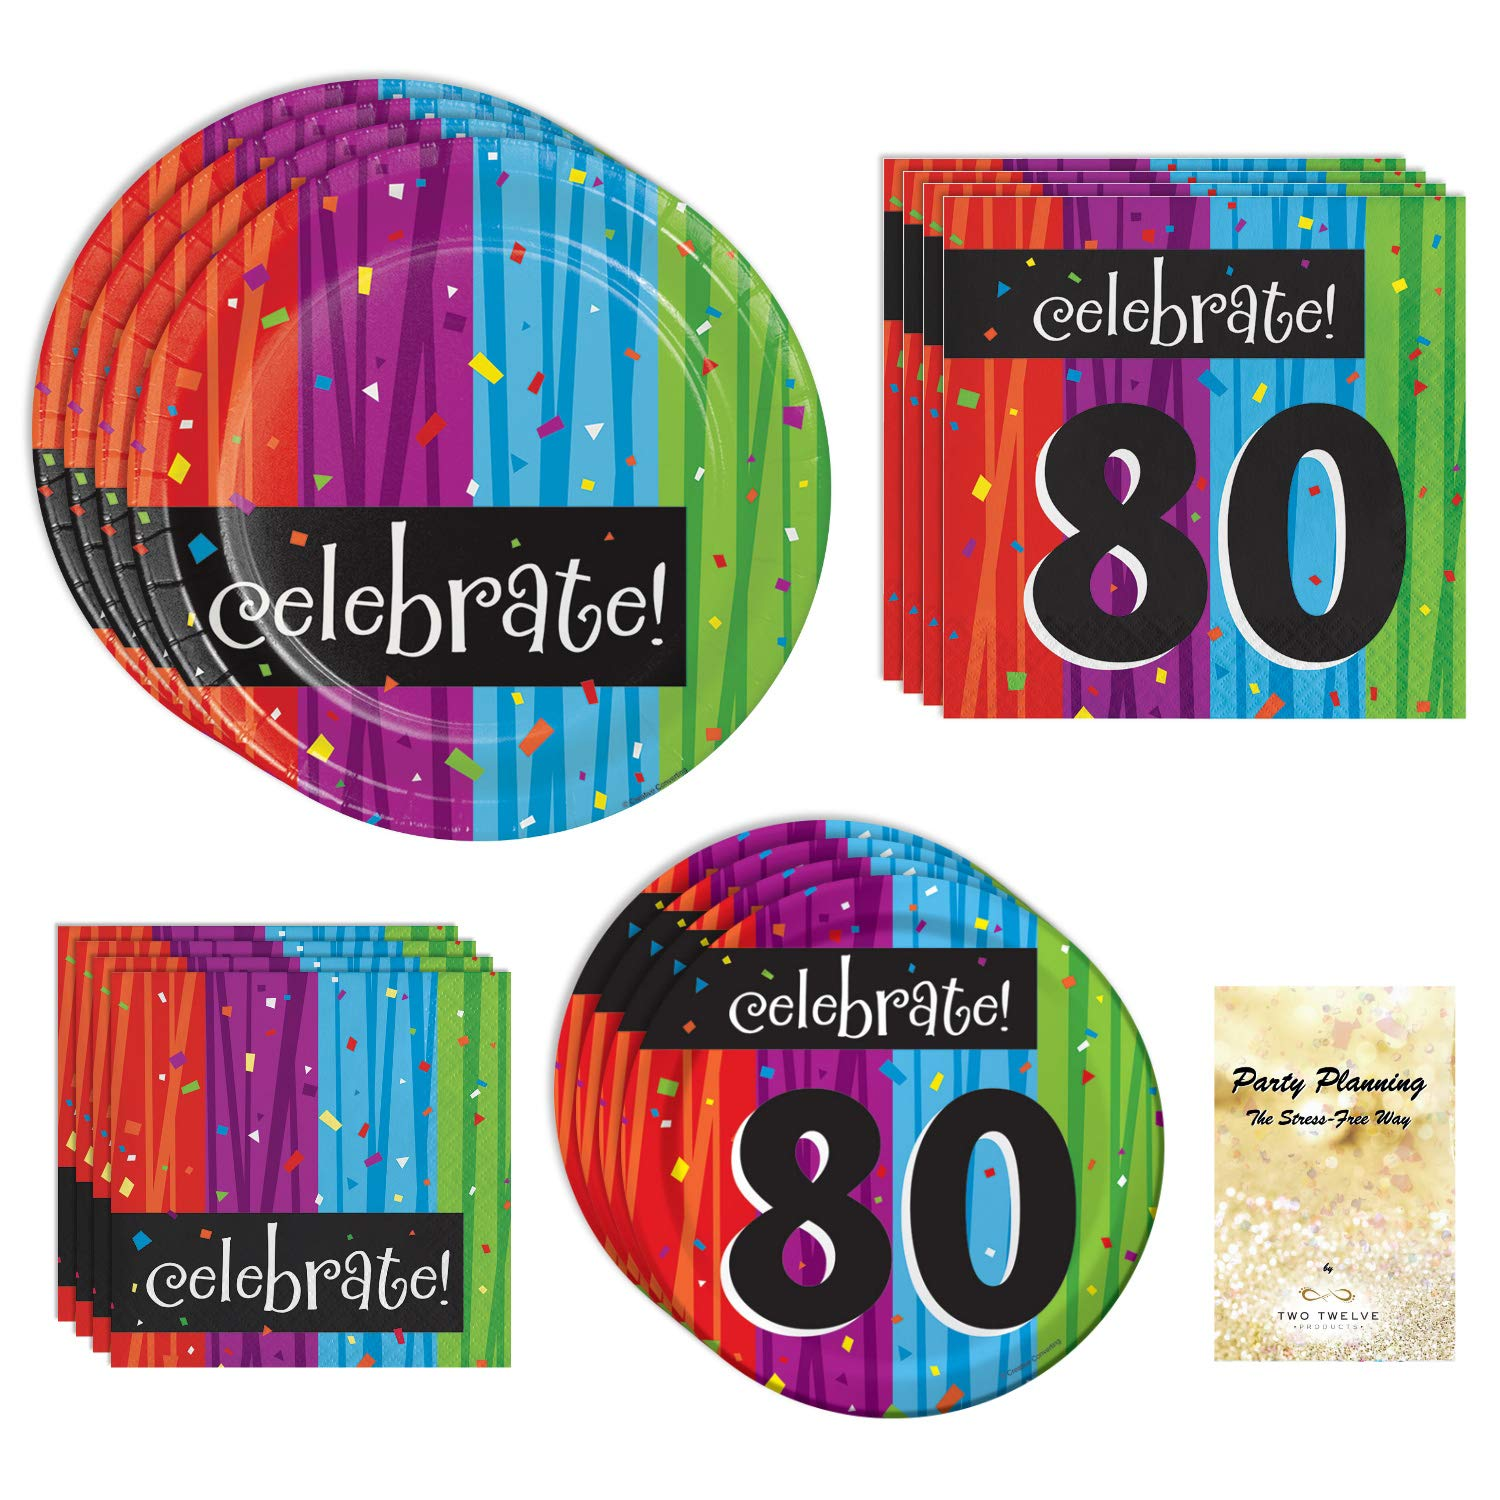 80th Birthday Party Supplies, Colorful Milestone Celebrations Design, Bundle of 4 Items: Dinner Plates, Dessert Plates, Lunch Napkins and Beverage Napkins